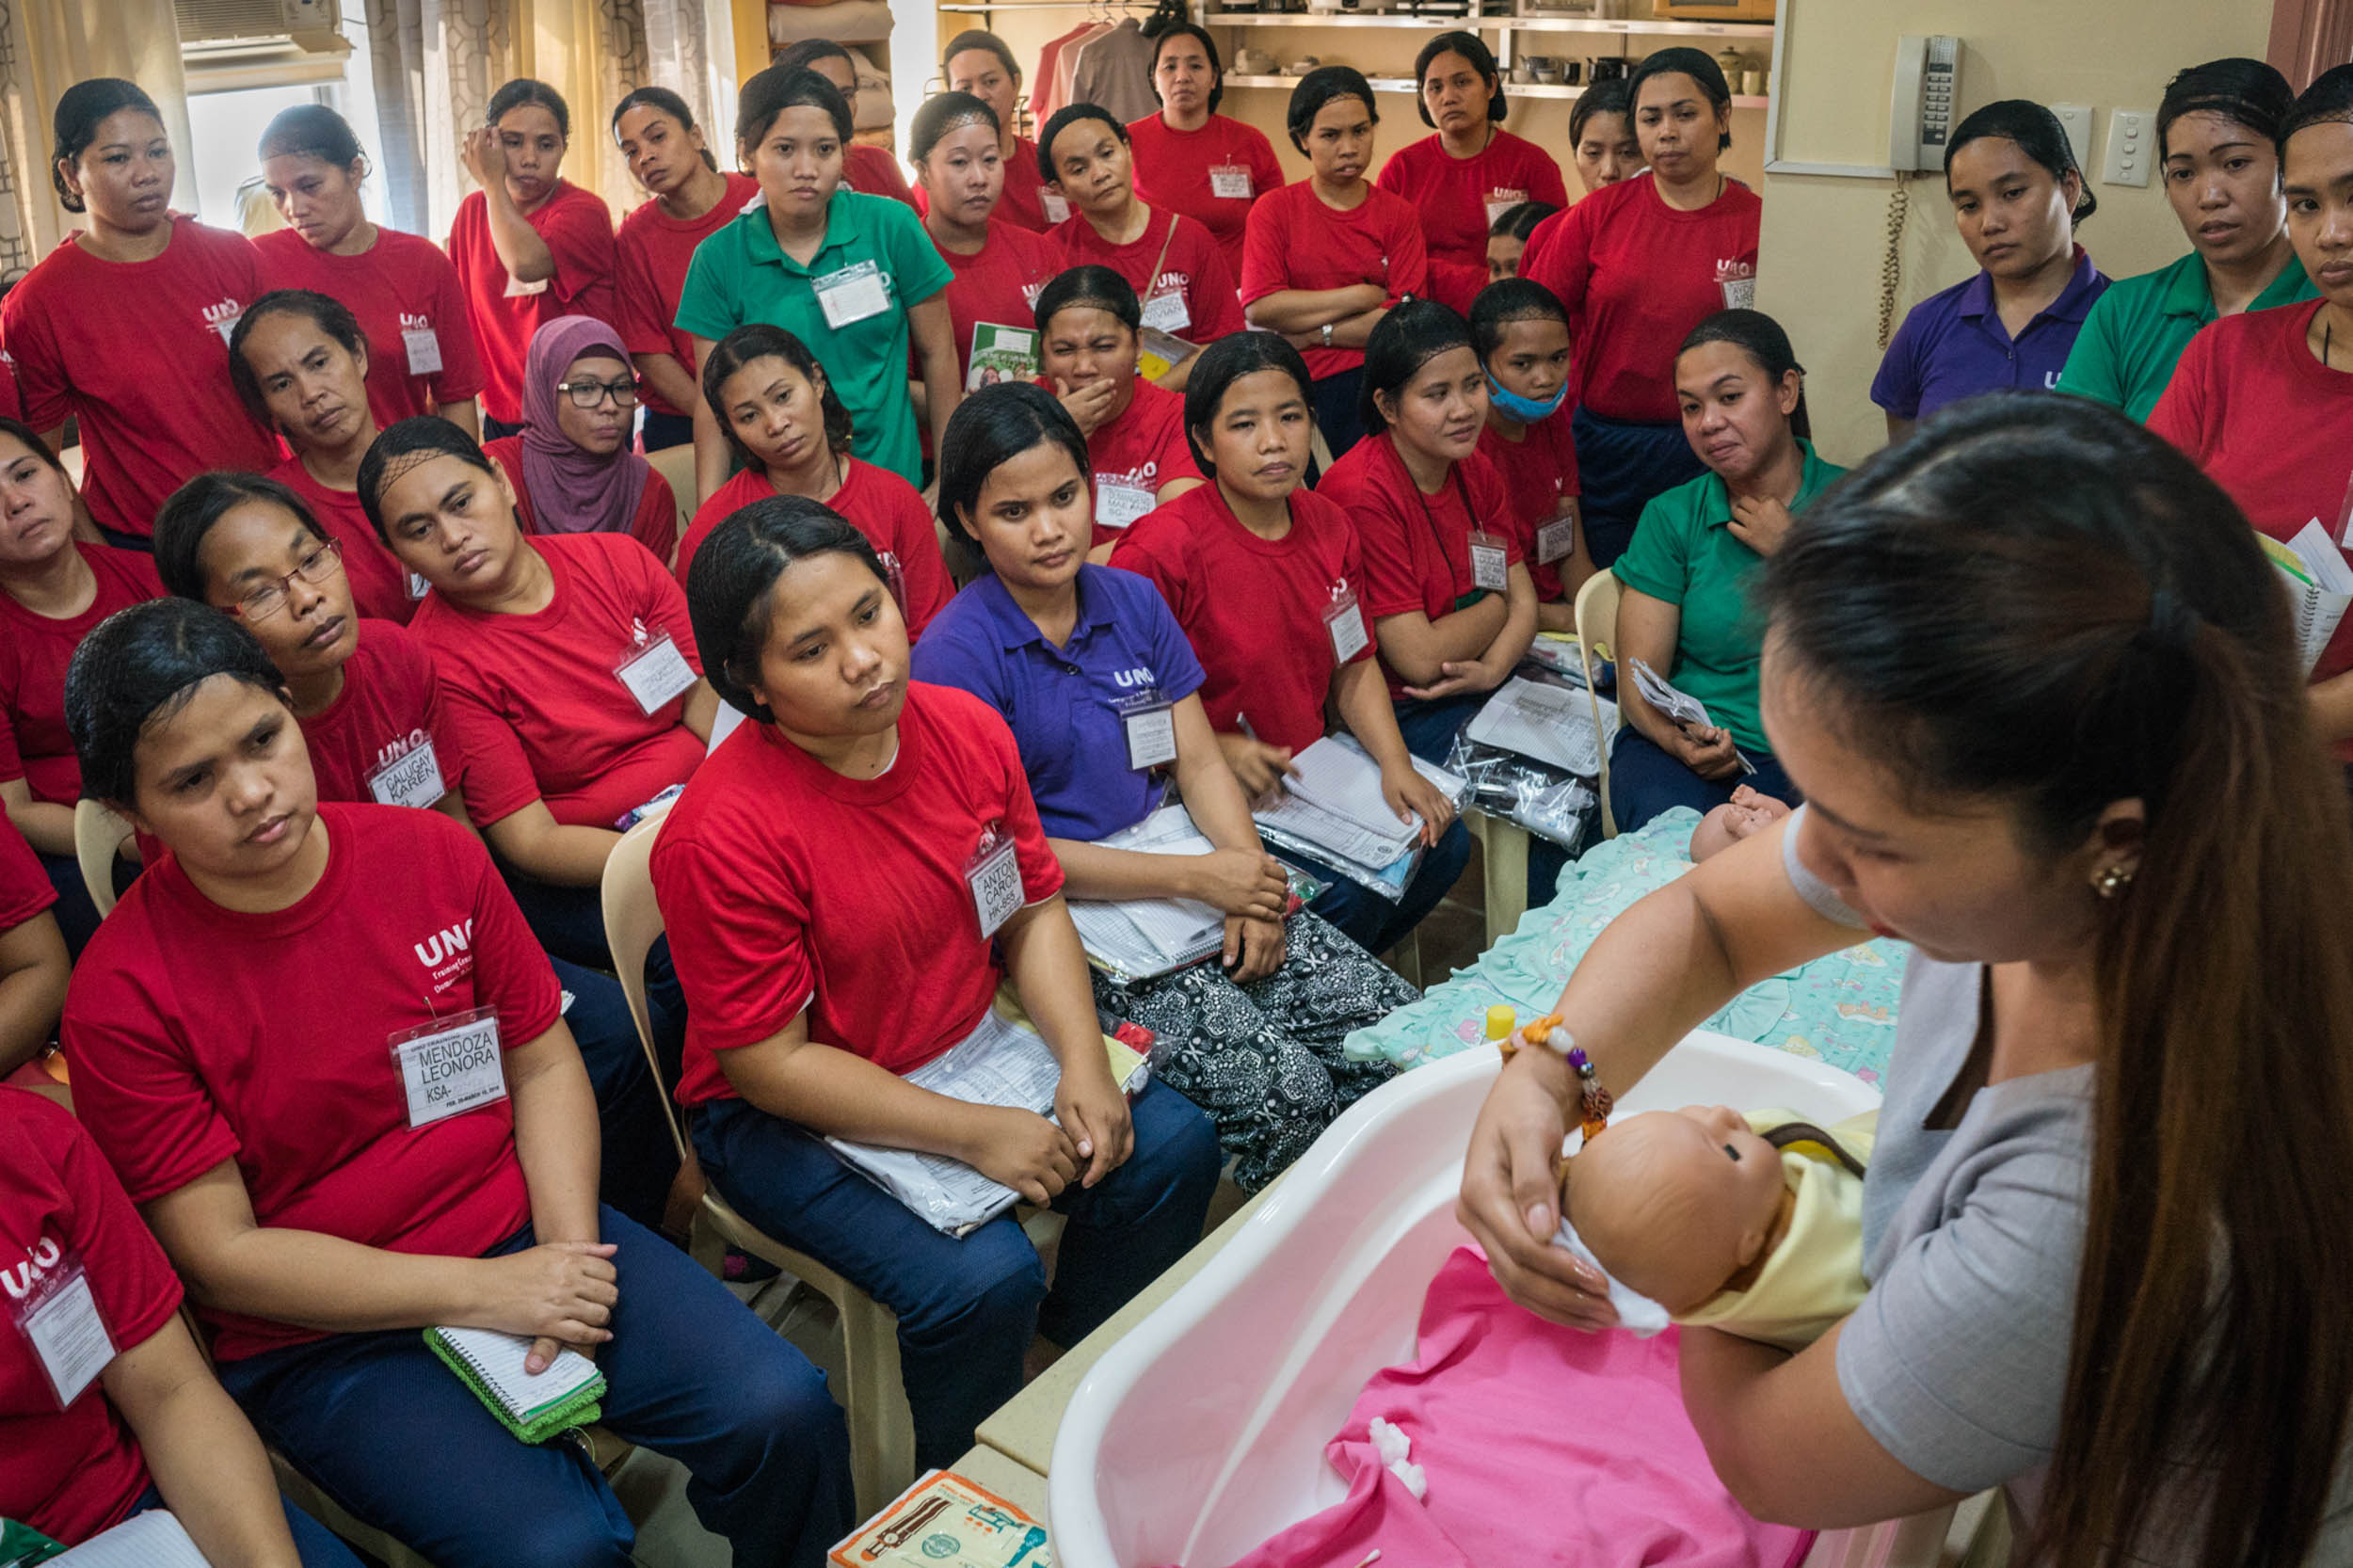 For decades the Philippine government has facilitated migration abroad as a way to develop the country. A sprawling trade school industry helps give Filipinos needed skills. Nannies are trained to dote on babies without making mothers jealous.